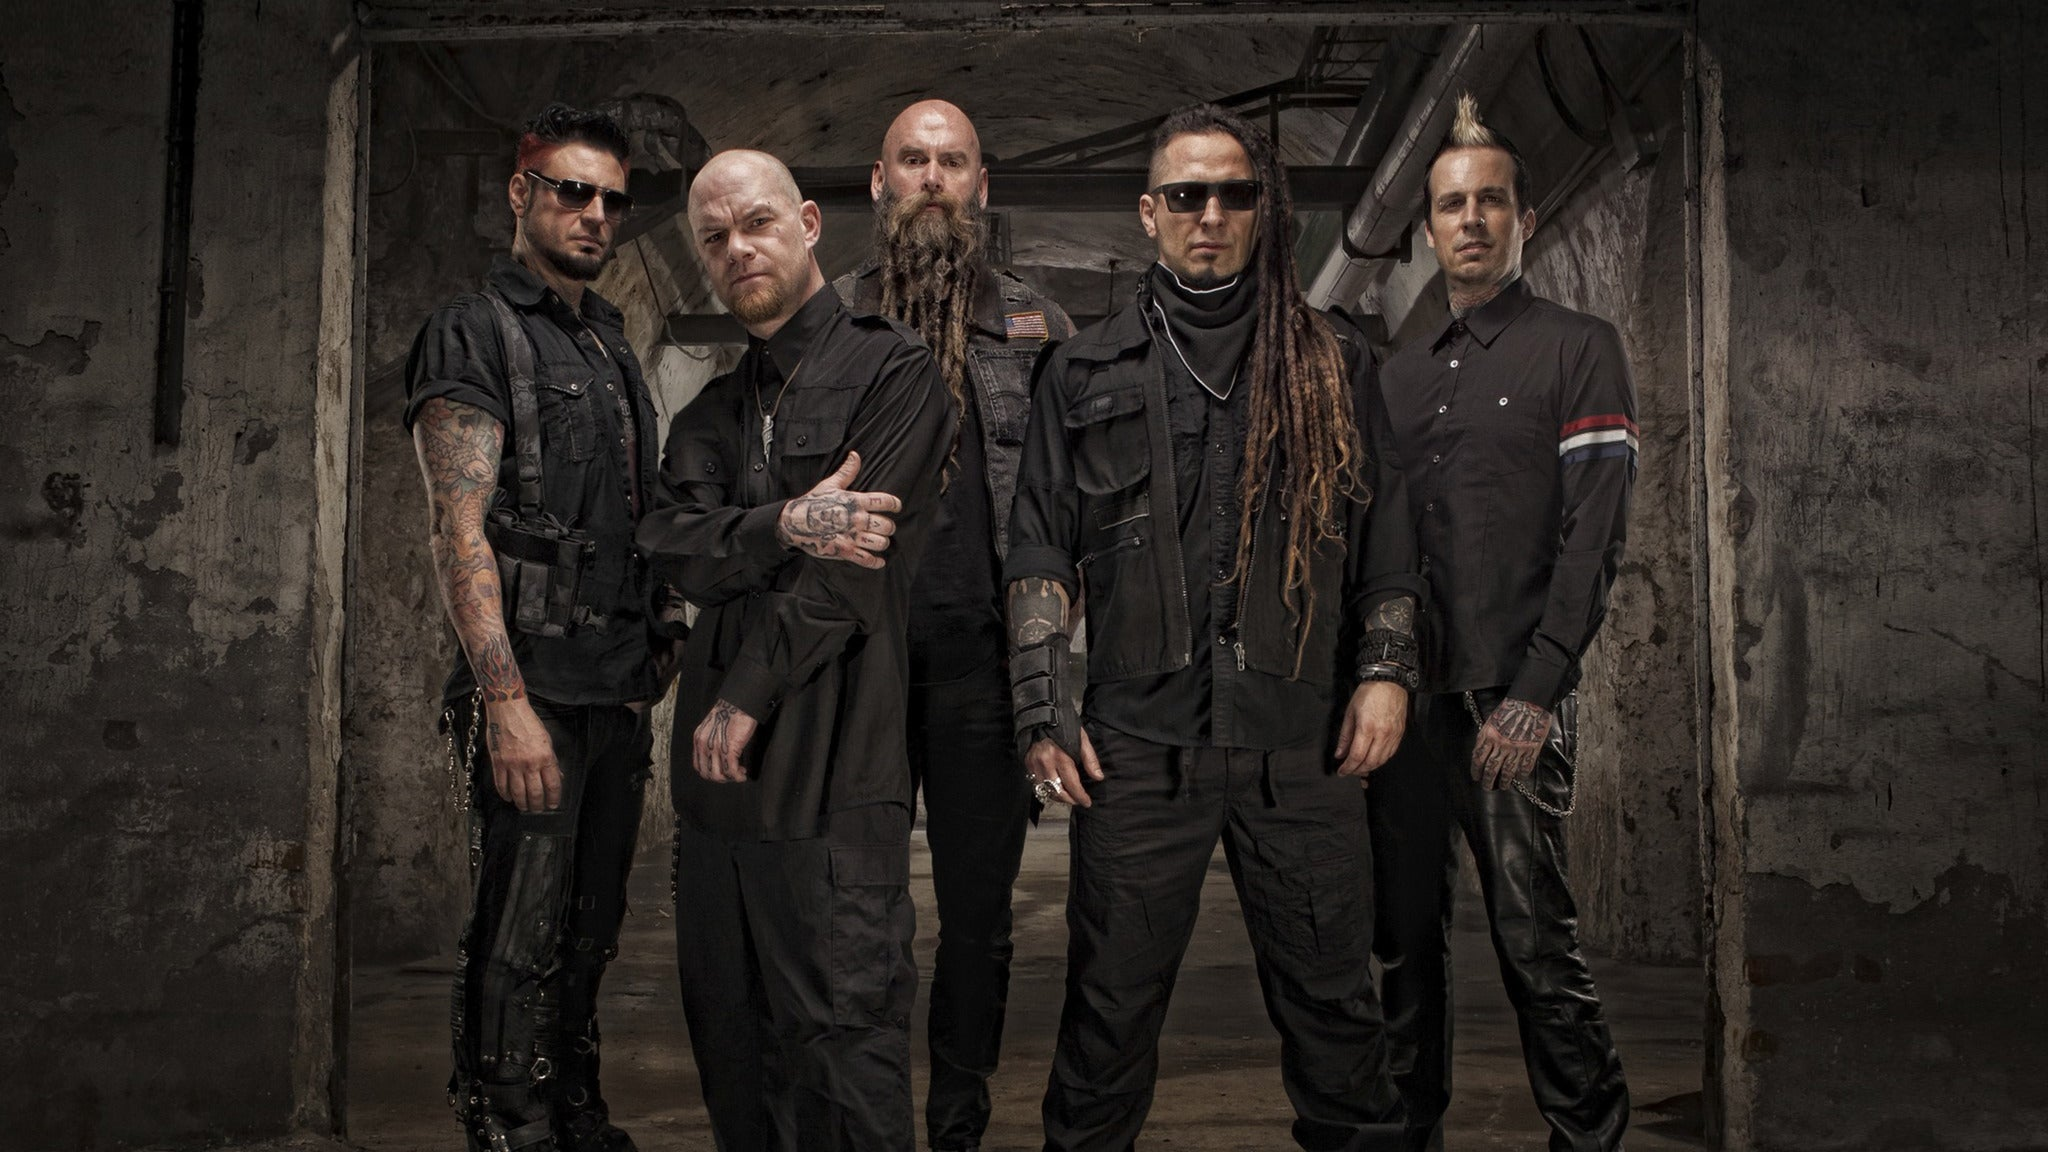 Five Finger Death Punch And Shinedown at Honda Center